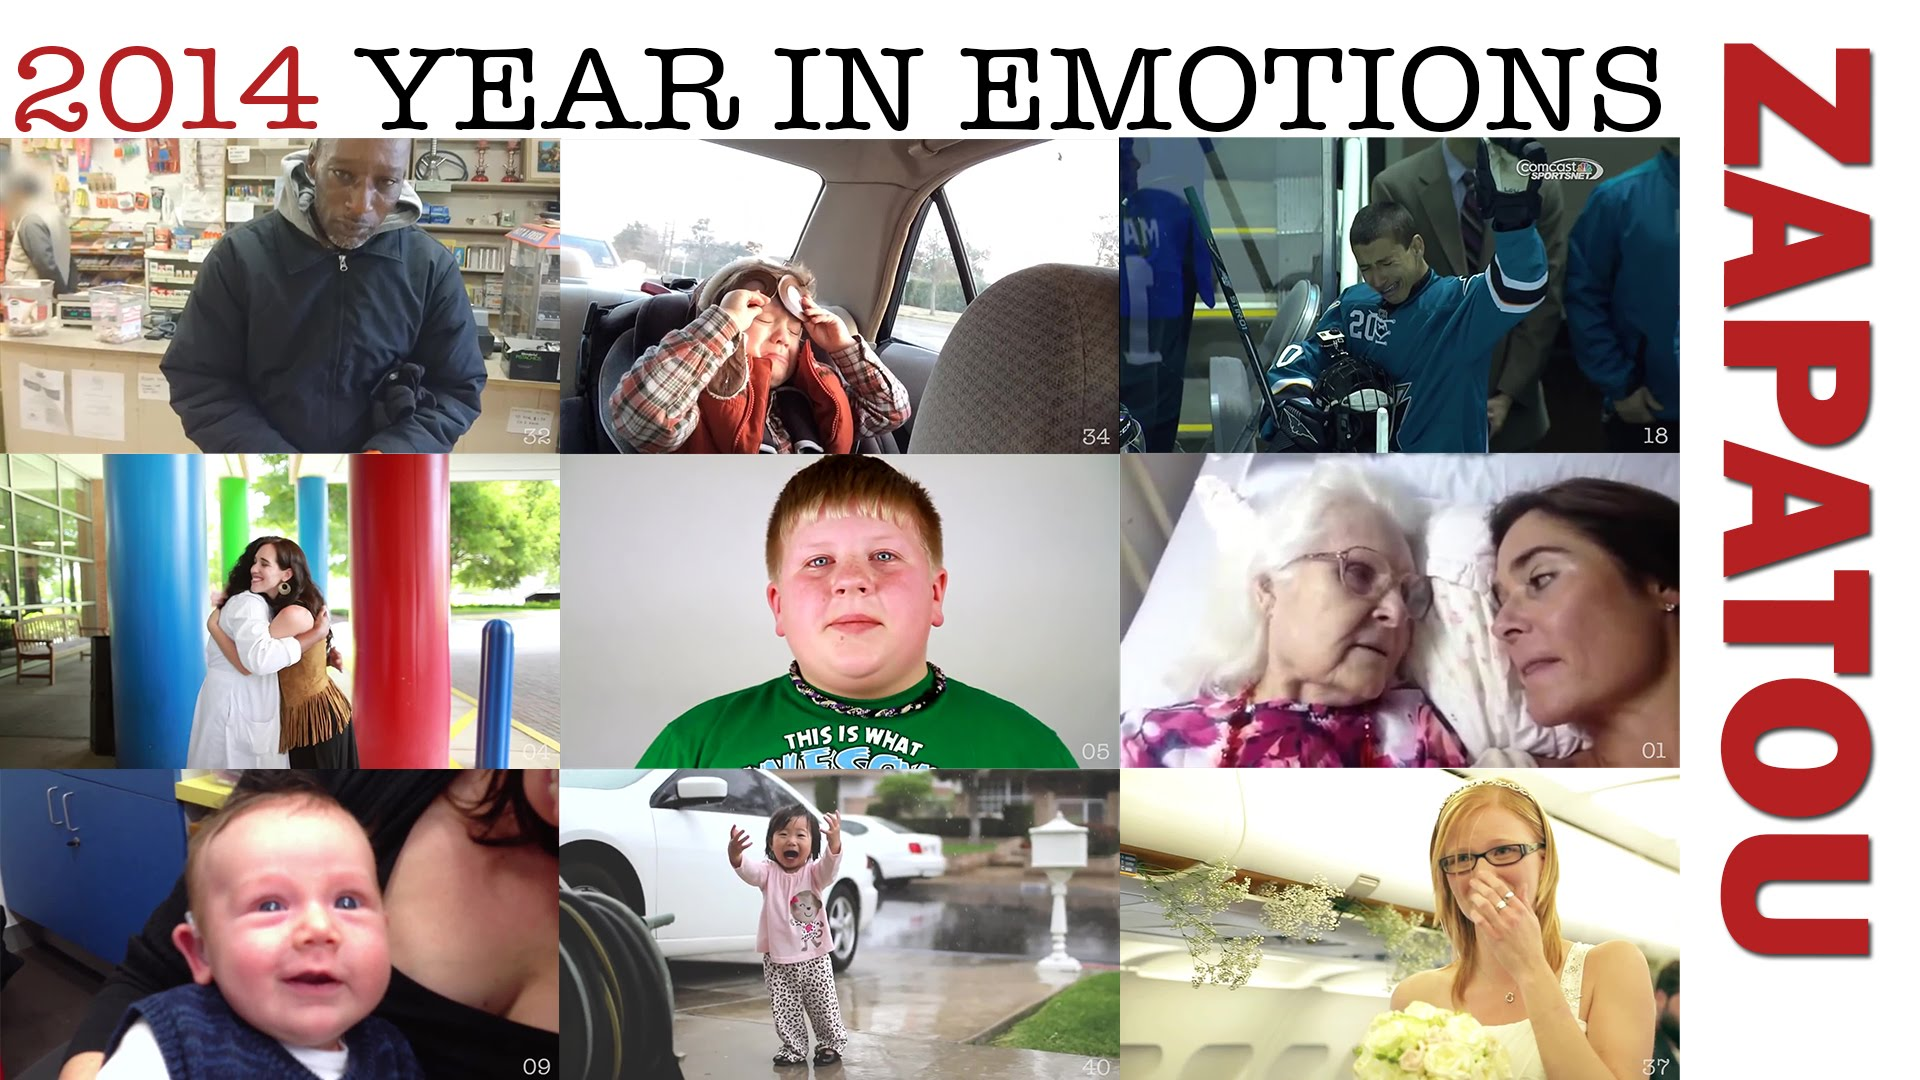 Year in Emotions – Another Fantastic Compilation by Luc Bergeron